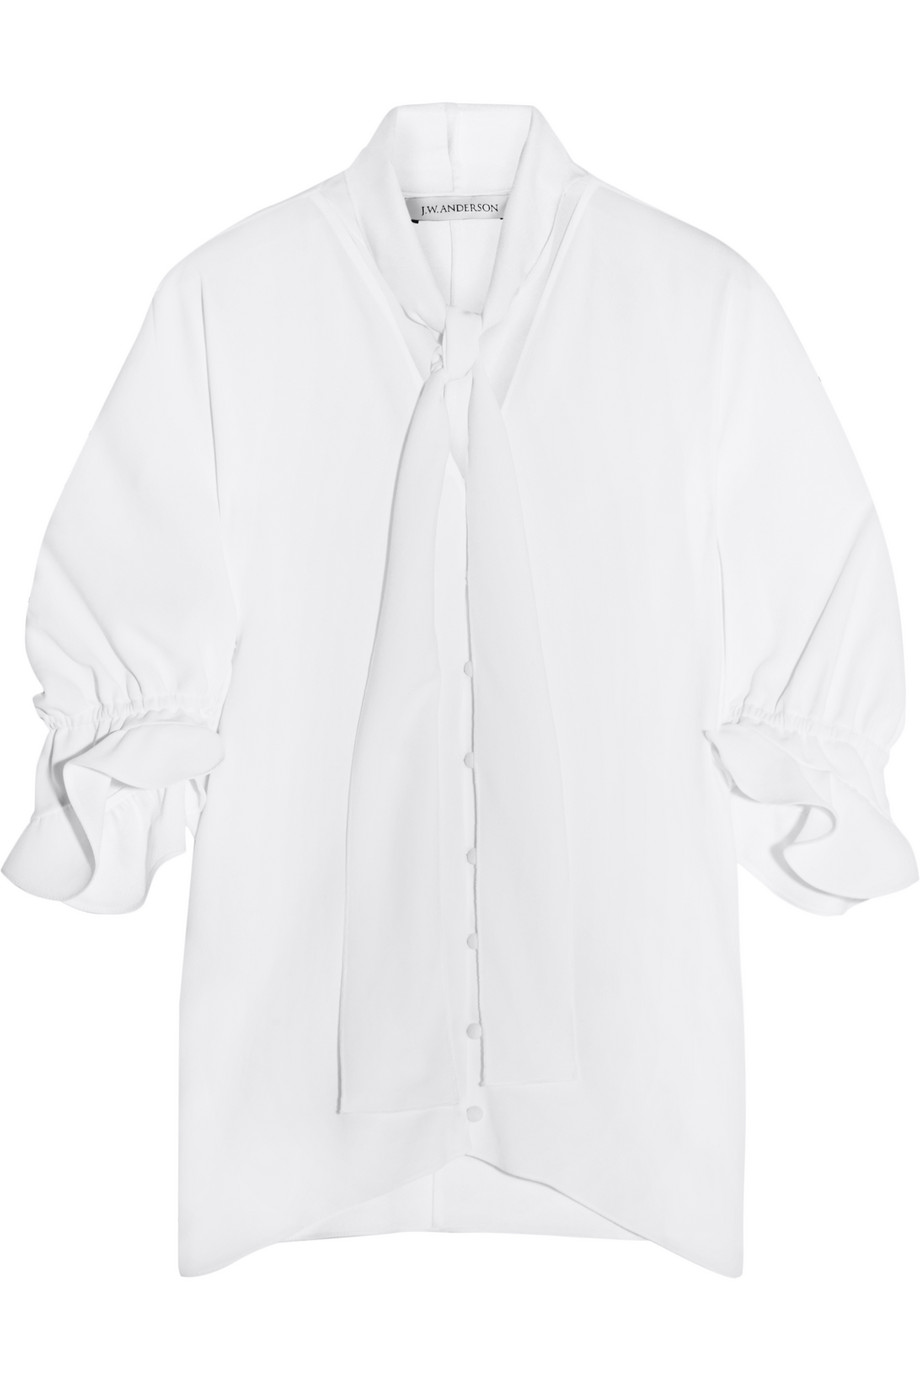 J.W.Anderson Pussy-Bow Ruffled Crepe Blouse, Size: 6